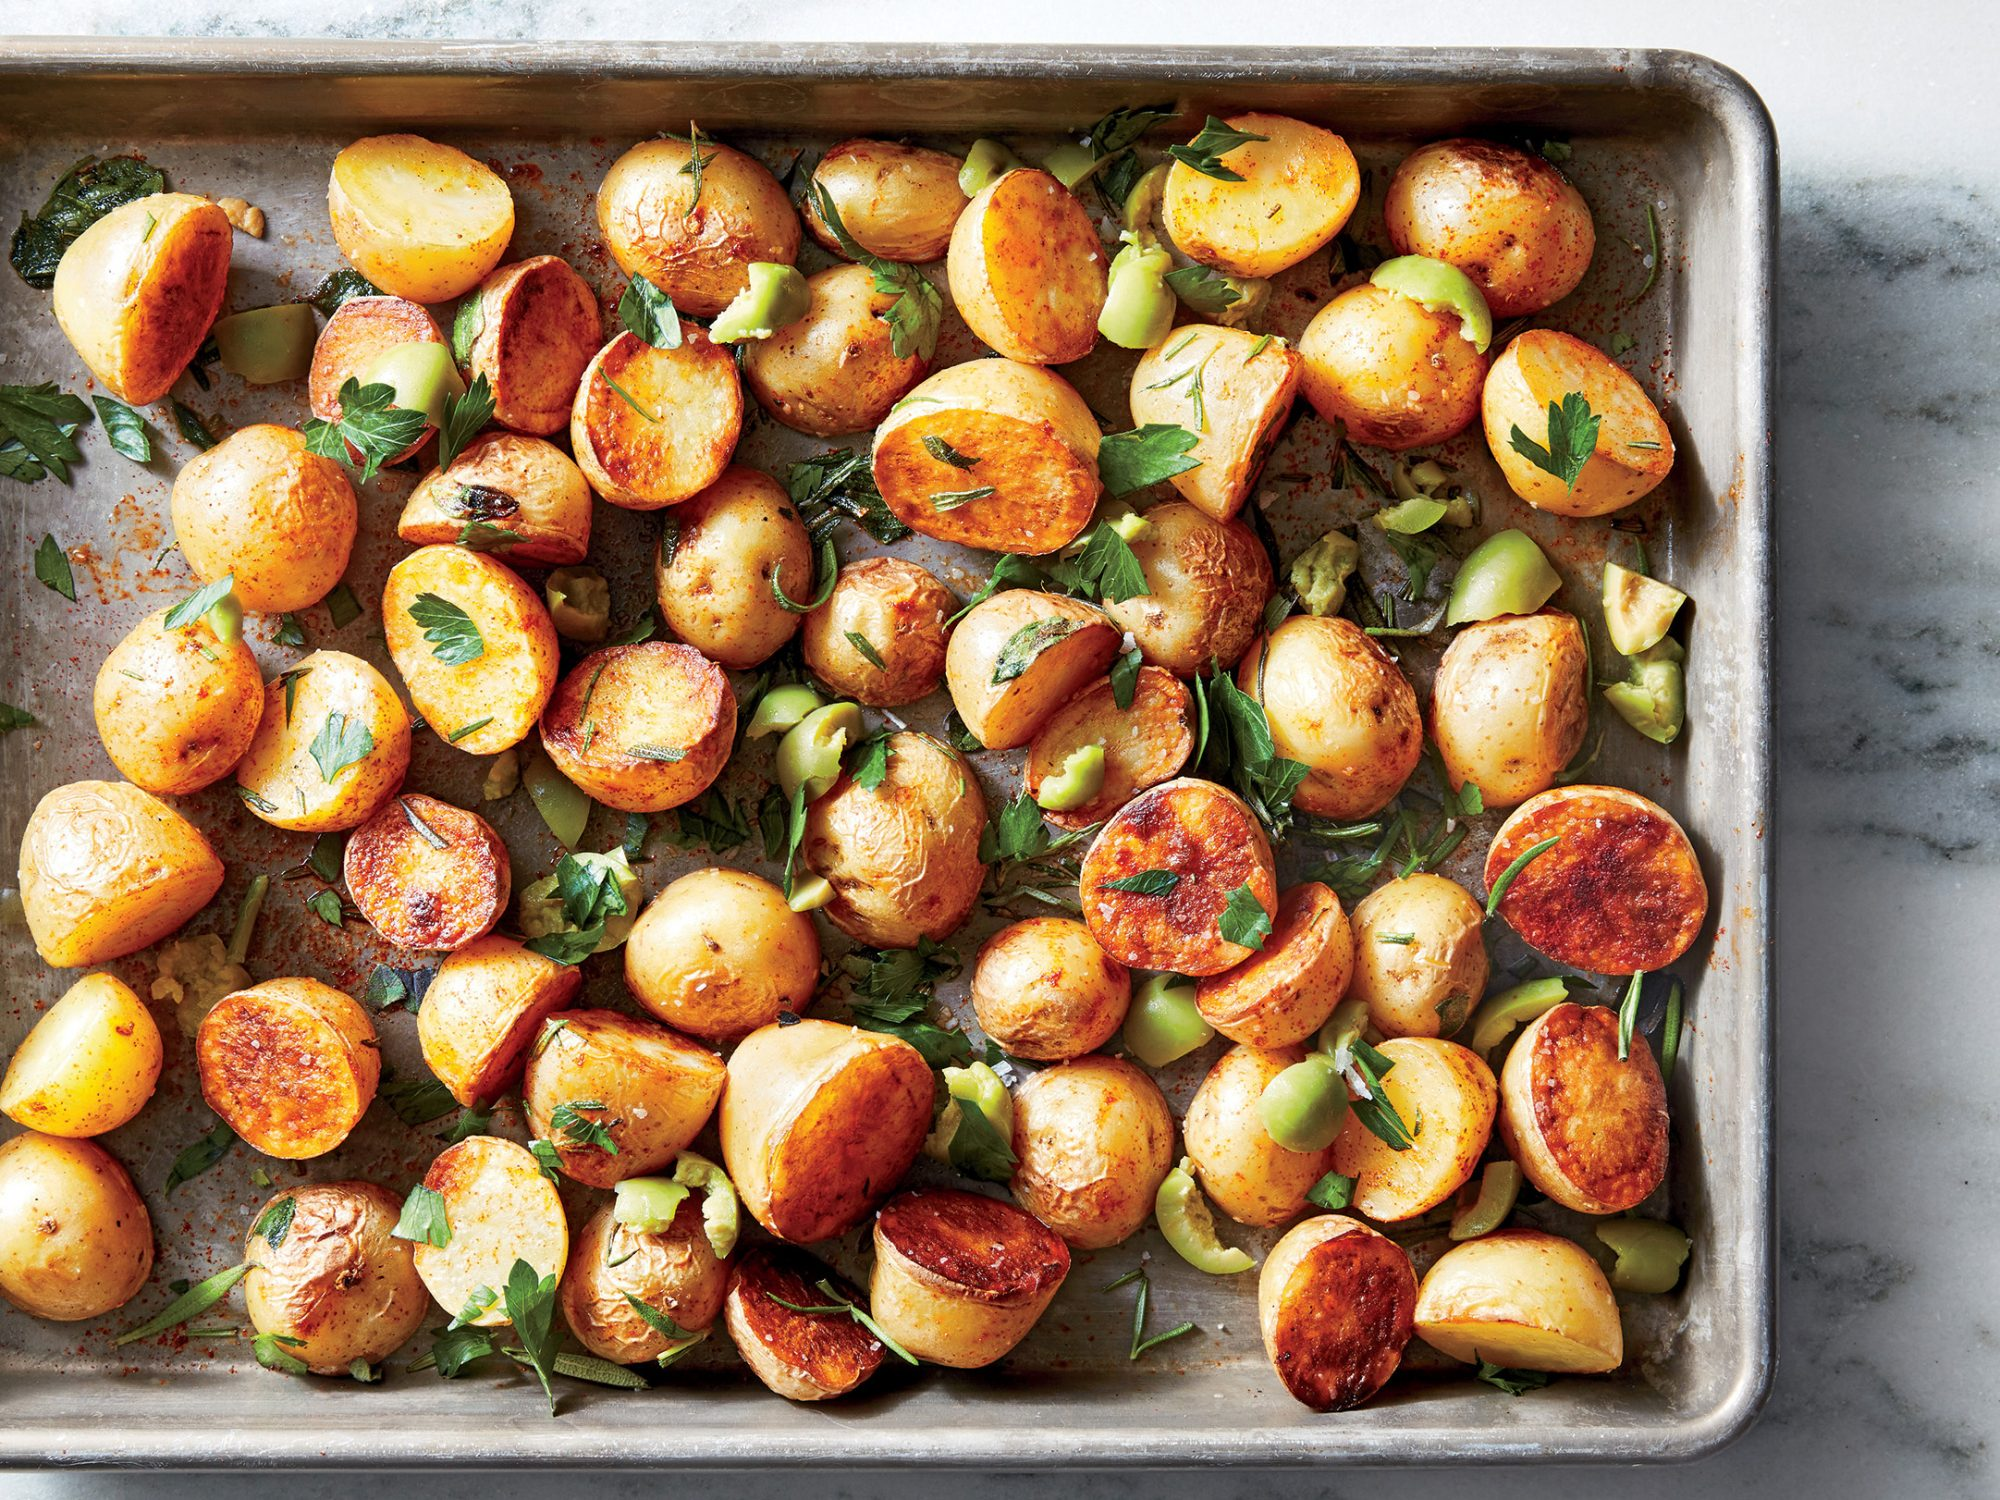 Spanish-Style Roasted Potatoes